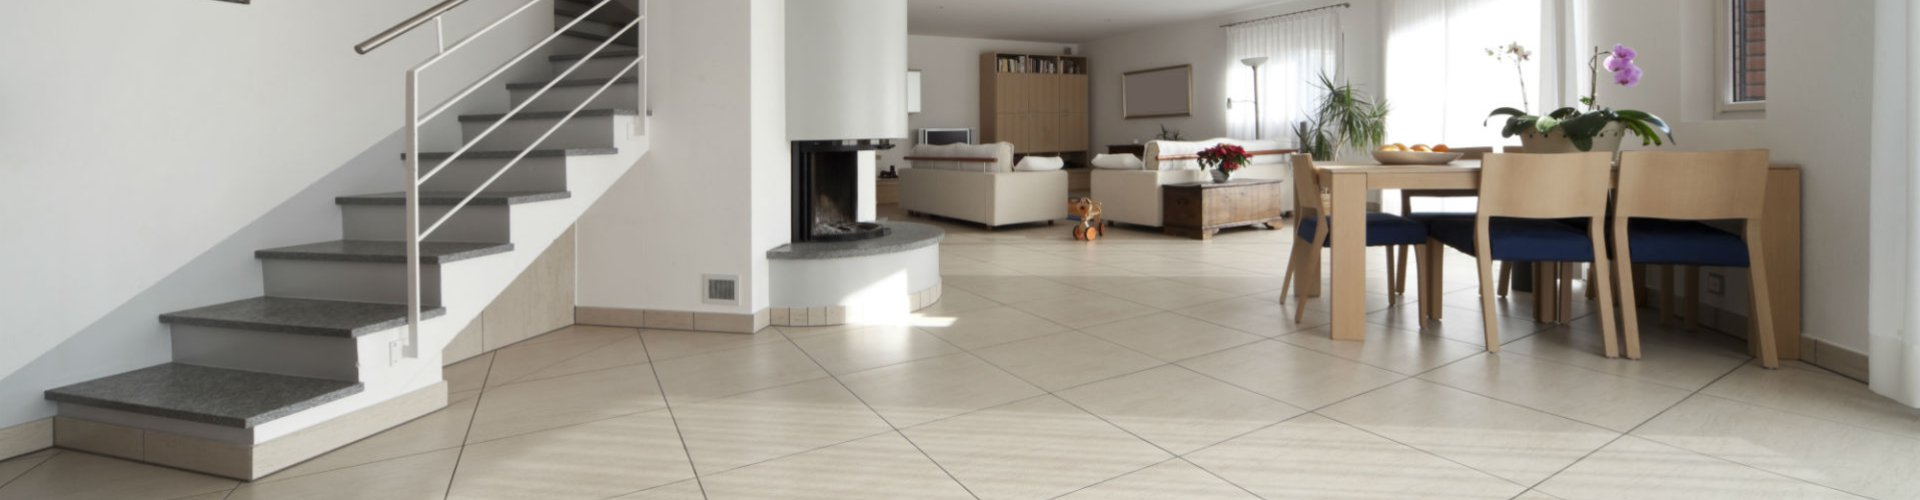 tile-and-grout-cleaning-perth